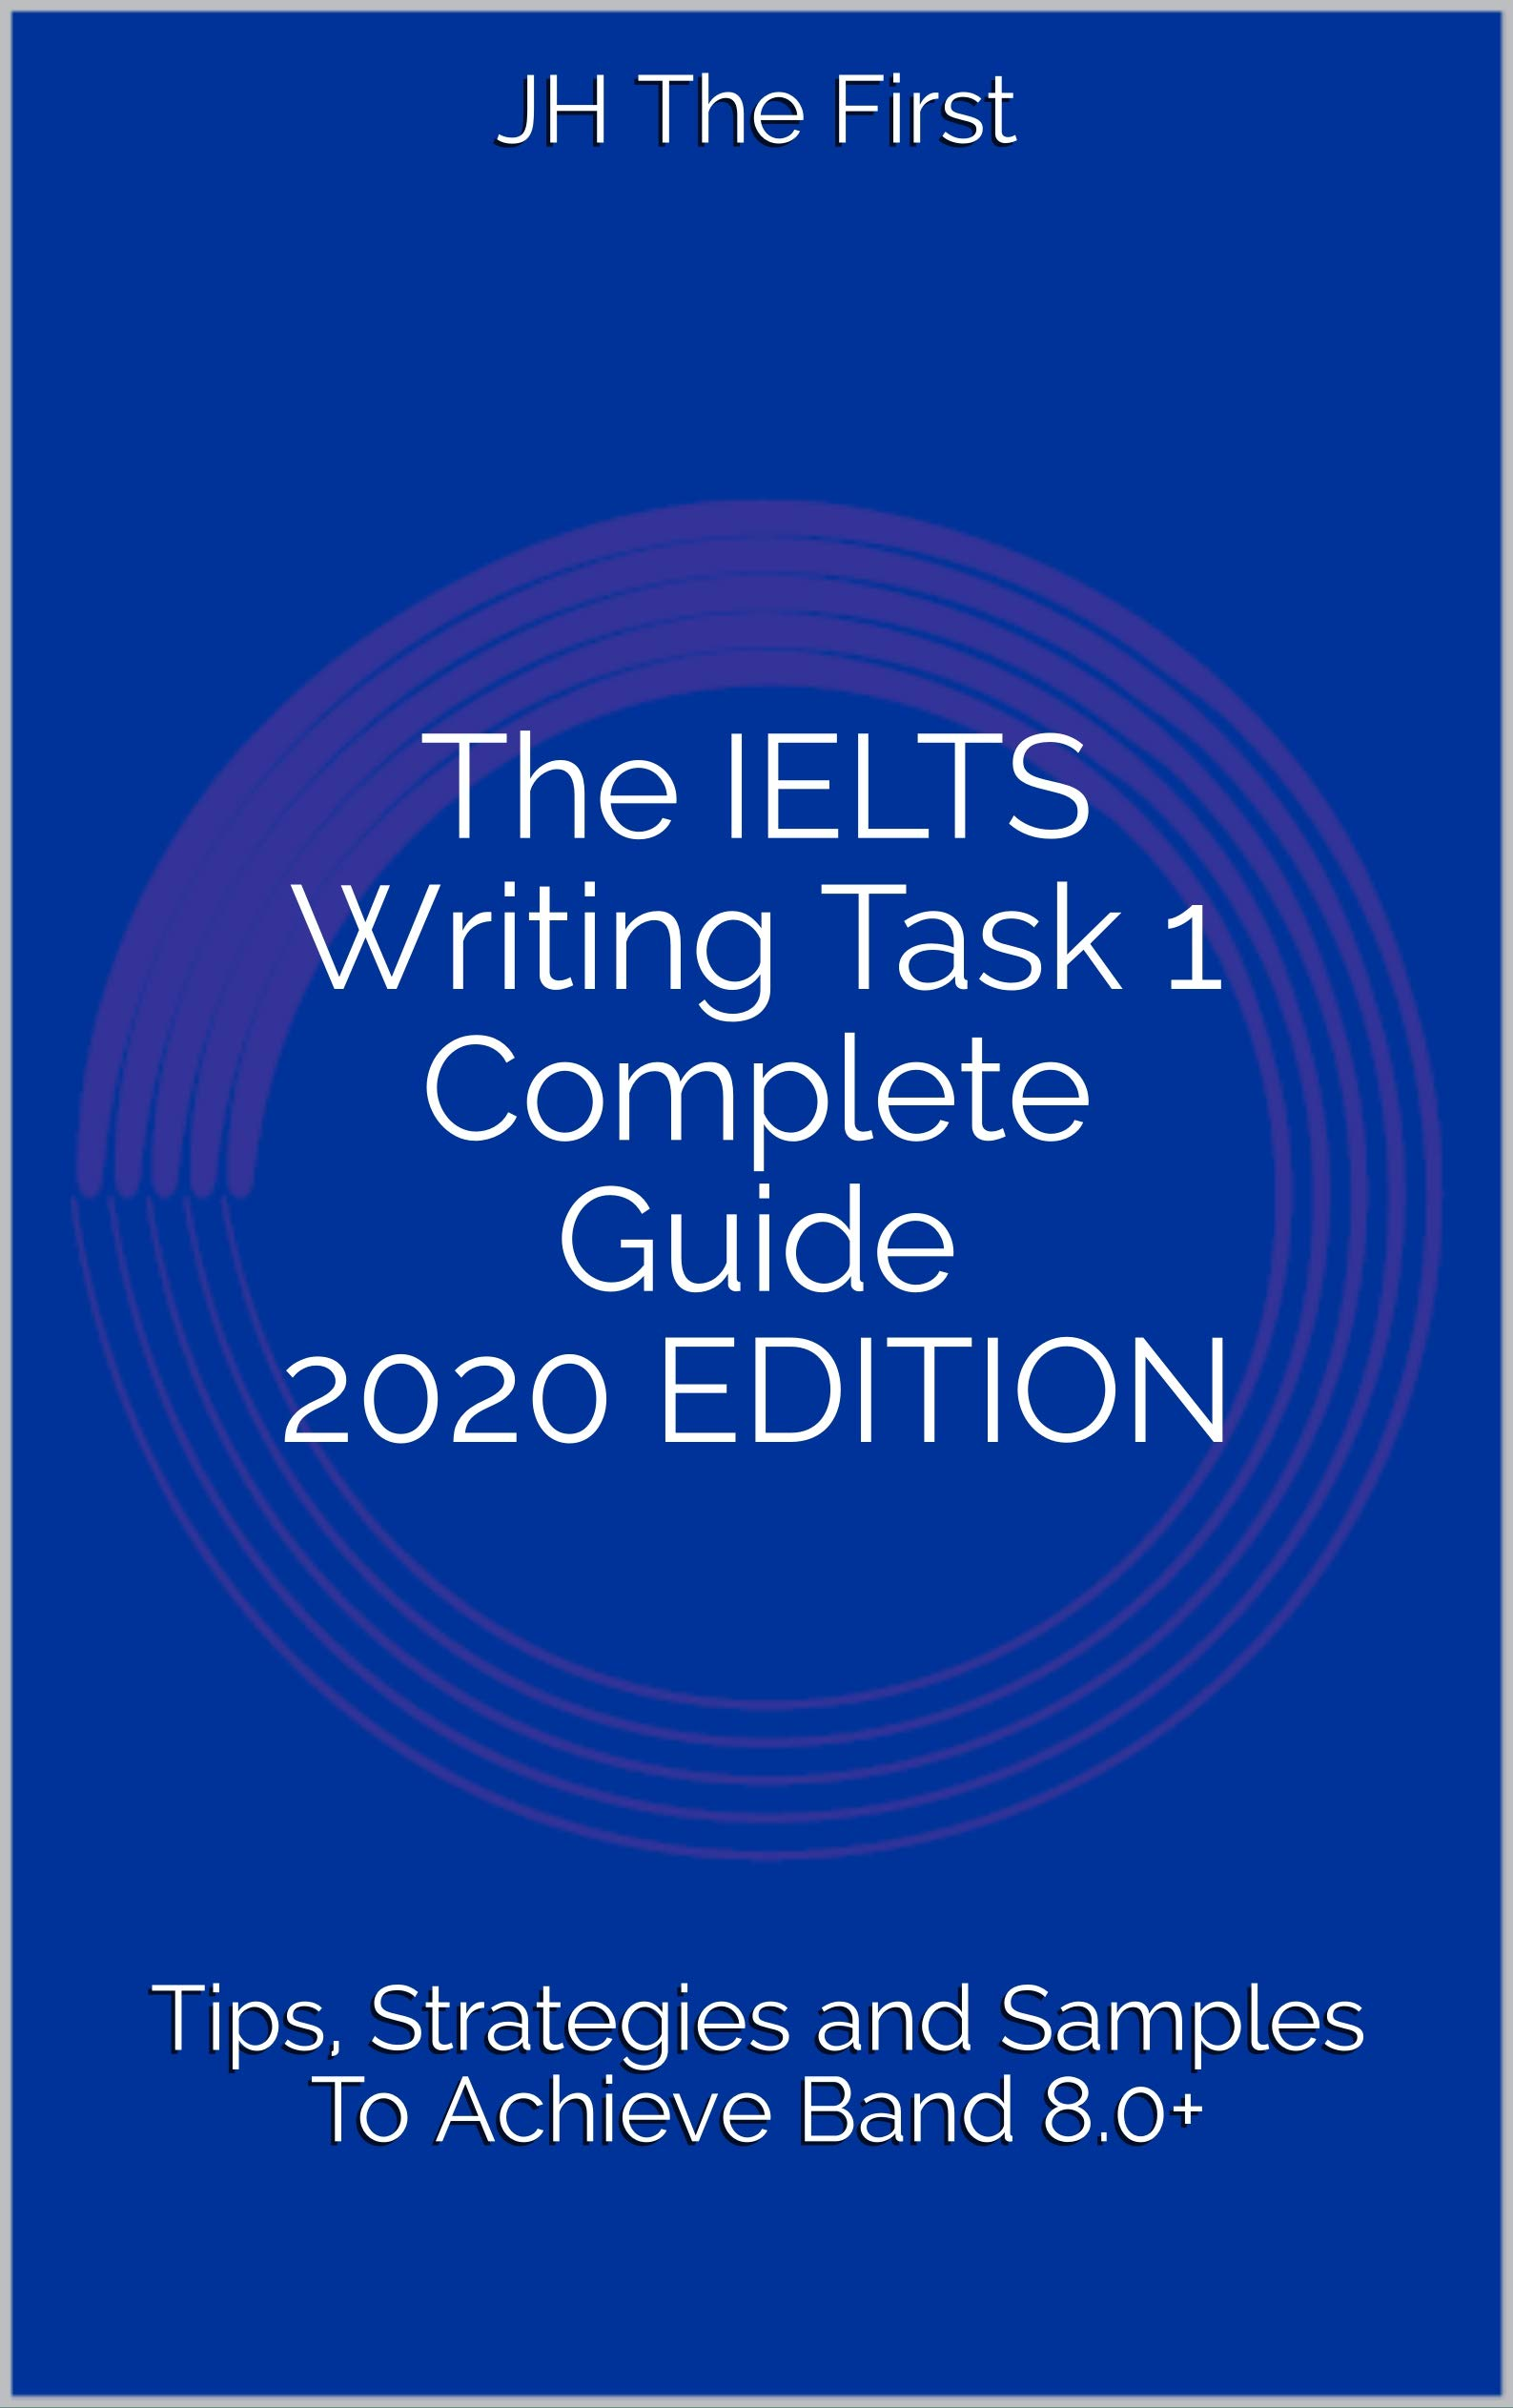 The IELTS Writing Task 1 Complete Guide 2020 EDITION: Tips, Strategies and Samples To Achieve Band 8.0+